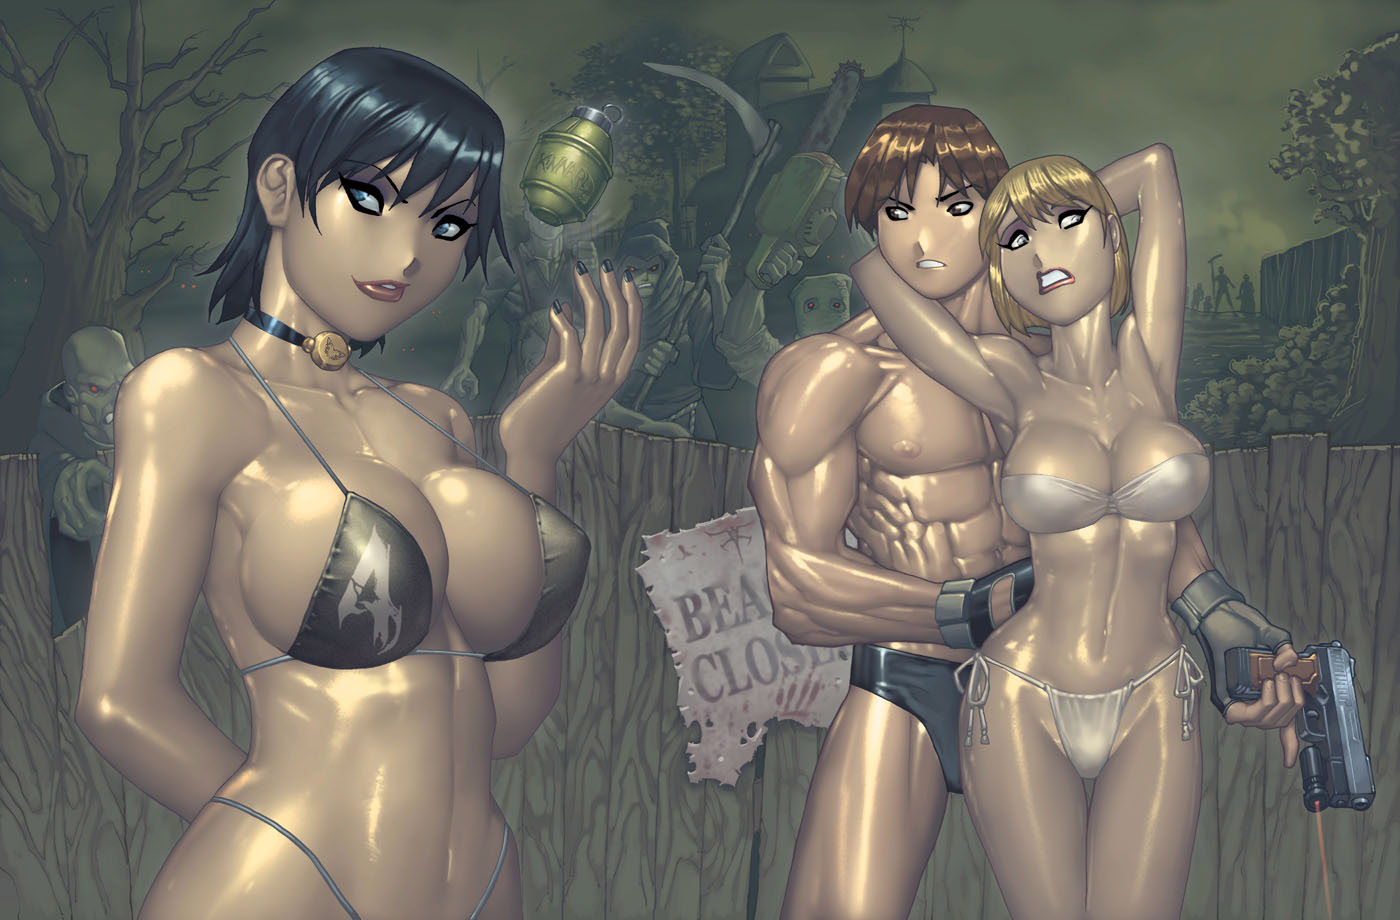 Leon and ashley porn resident evil 4 erotica photos